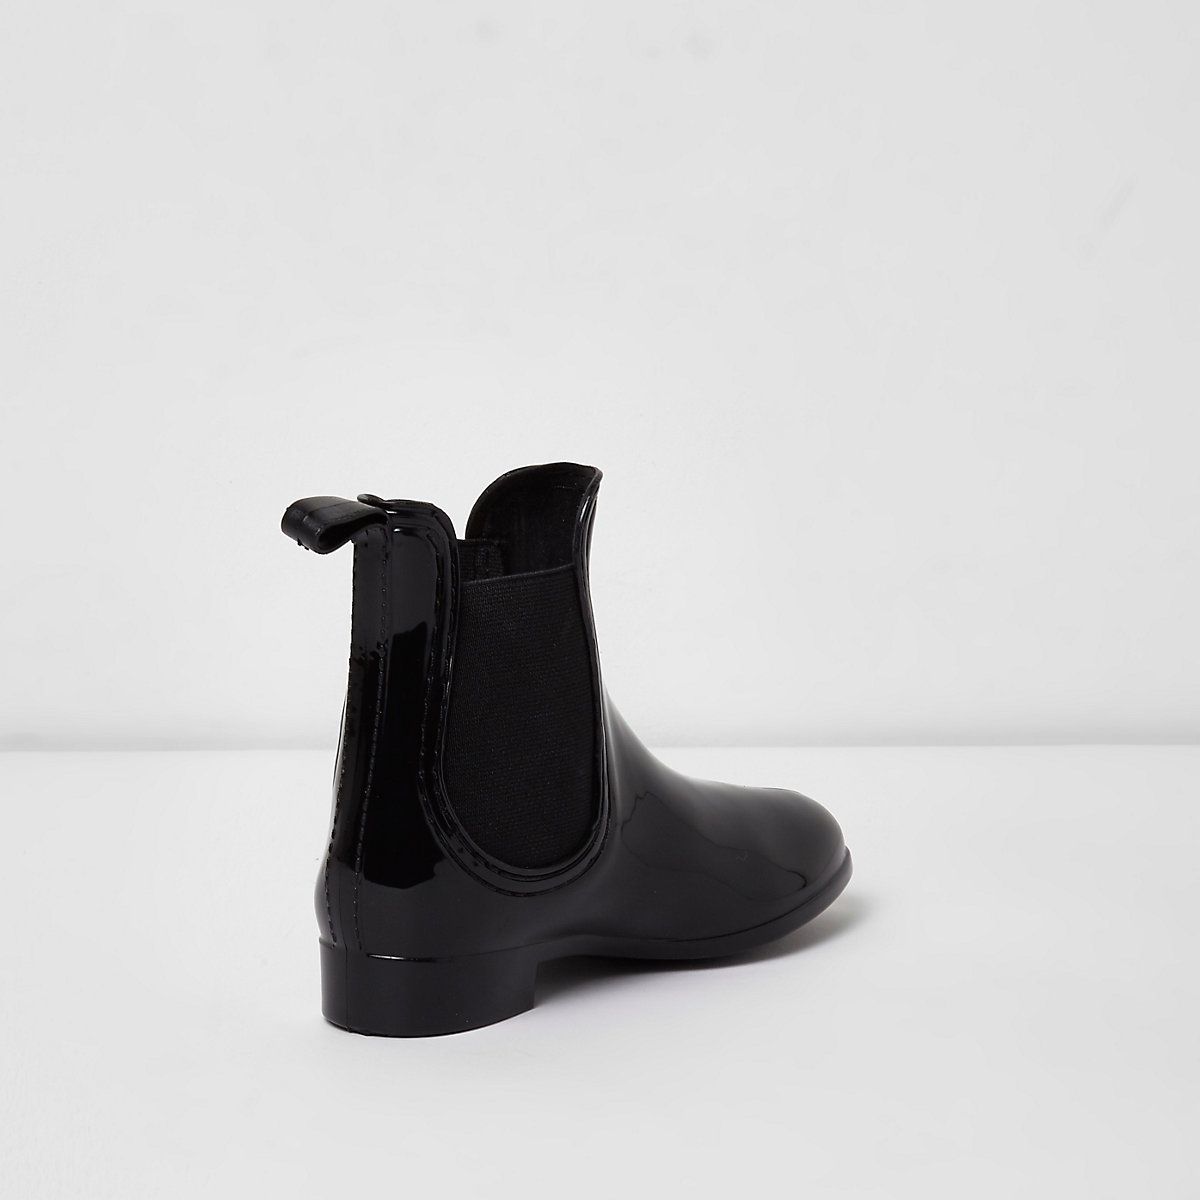 competitive price 66f98 5dec5 Girls black patent chelsea boot wellies